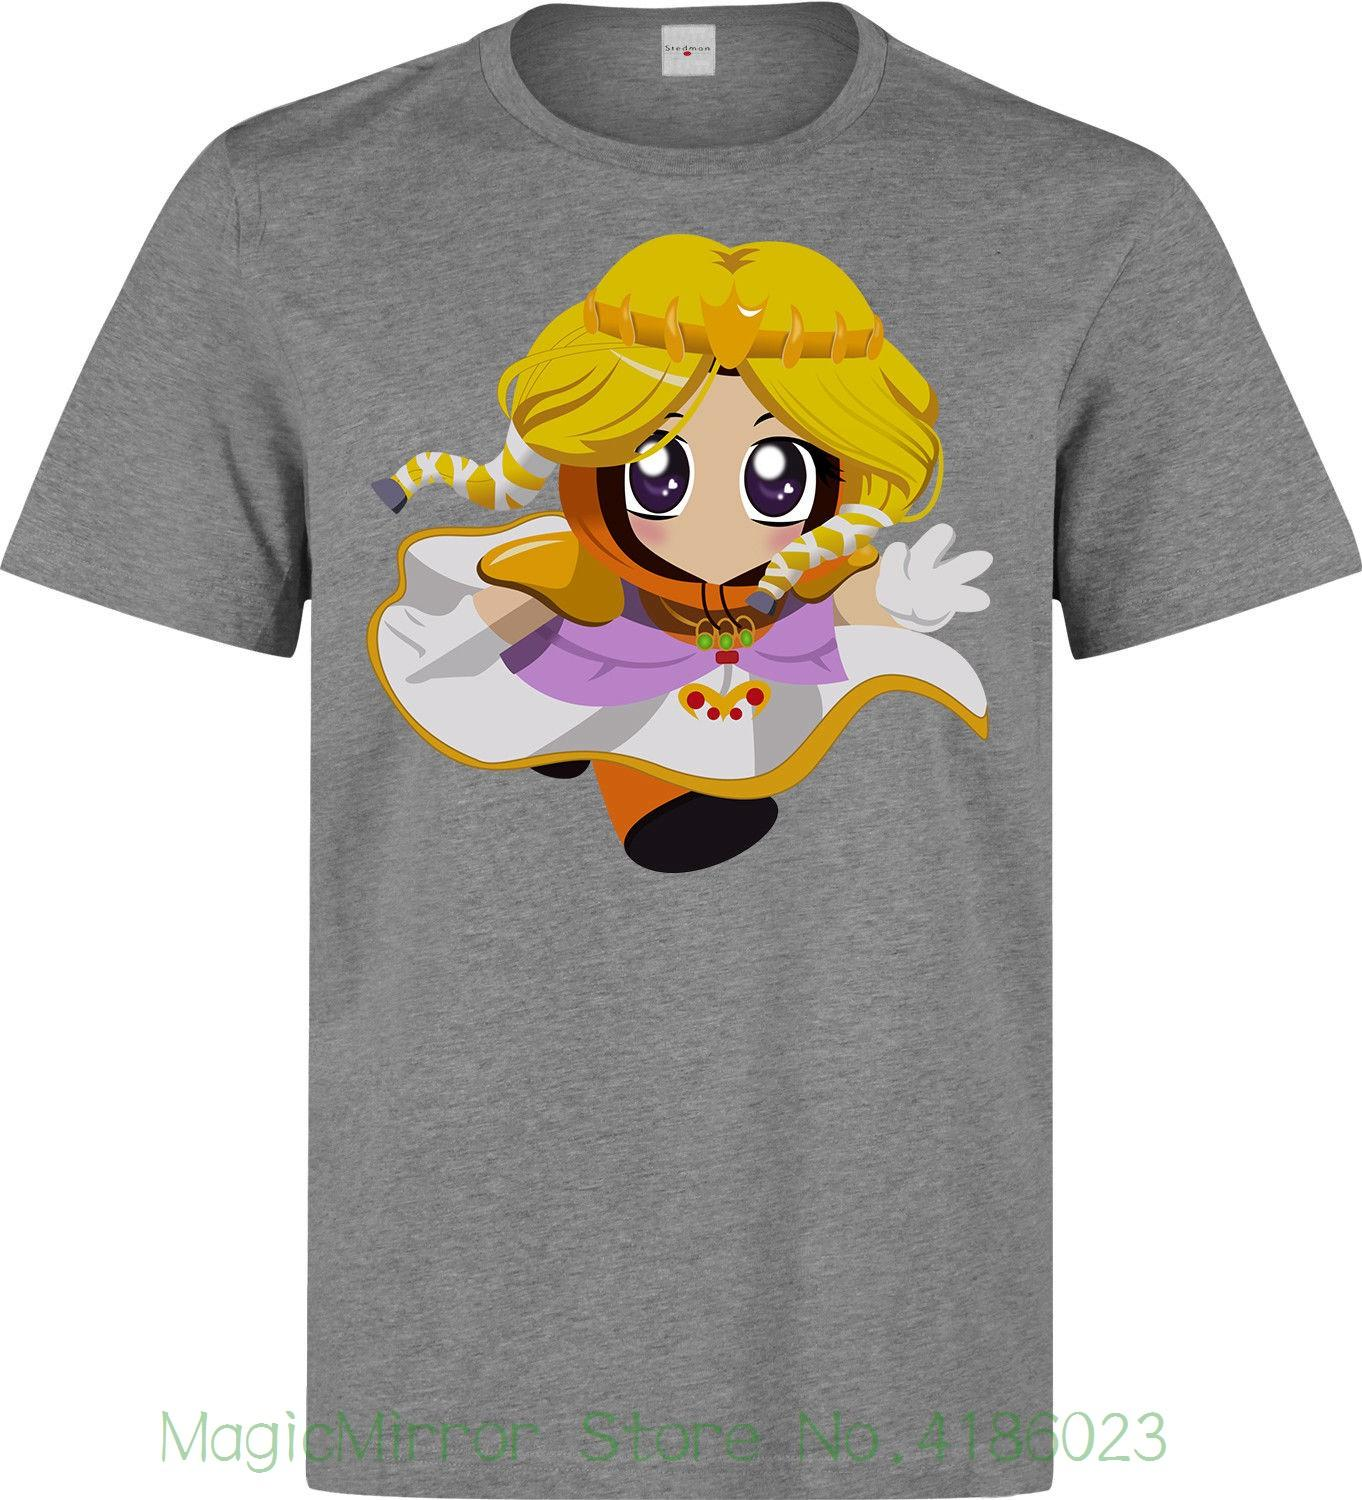 752d32fadac50 South Park My Little Princess Kenny Art Men S Woman S Available Grey T  Shirt Top Tees Custom Any Logo Size Buy T Shirt Designs Printing Tee Shirts  From ...